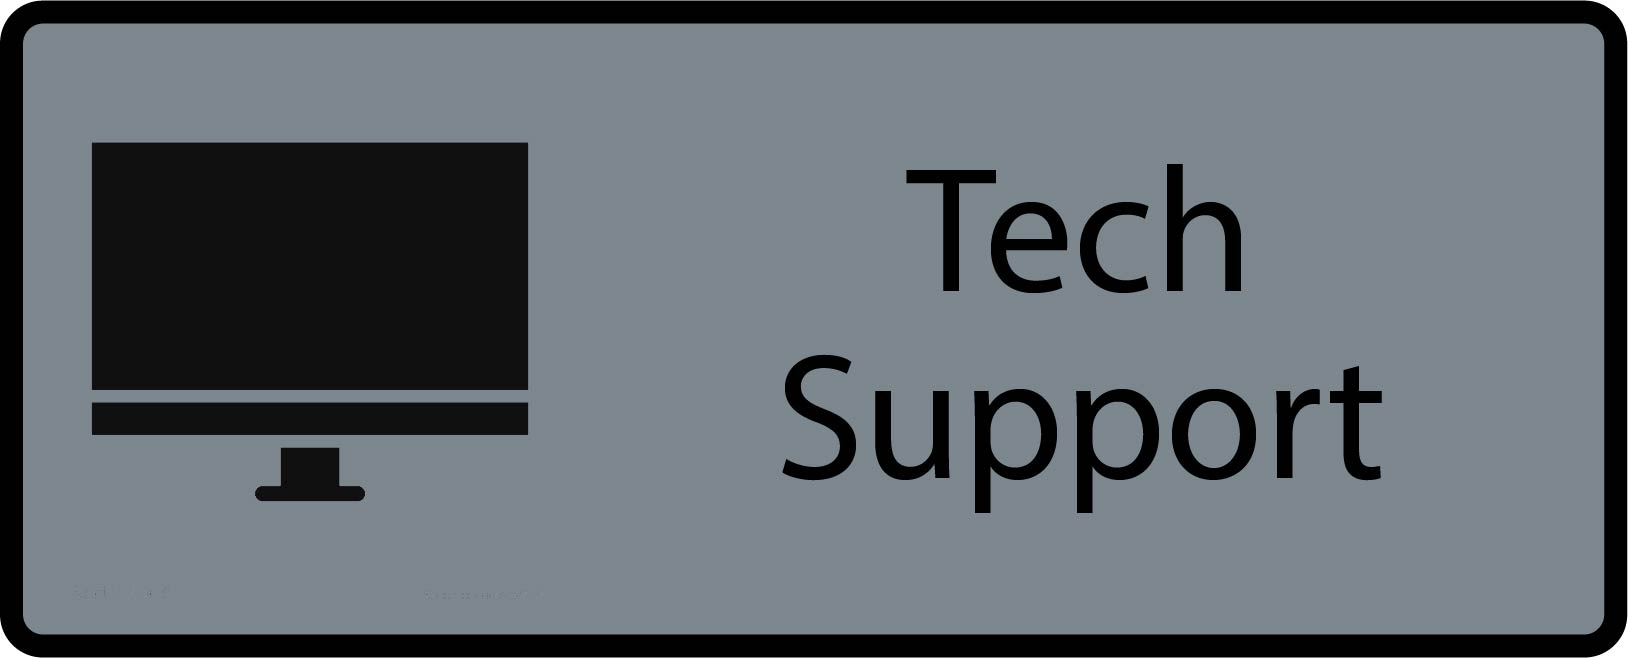 Tech Support is available at https://techsupport.uconn.edu